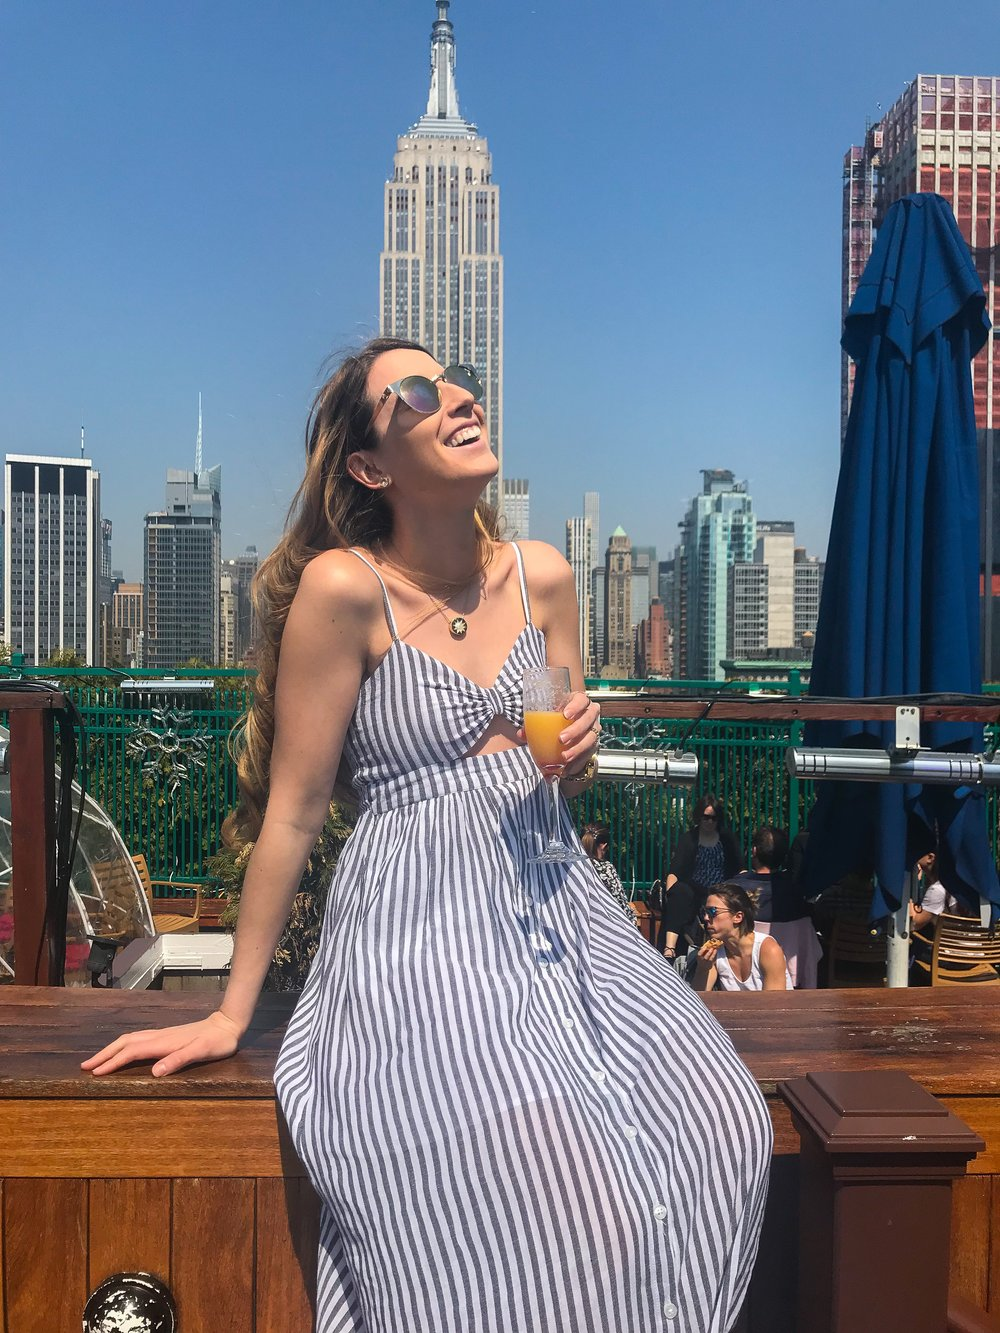 - Finally! Some sun in NYC! And I was so excited to spend the first warm day in NYC at 230 5th Rooftop with my coworkers taking in as much vitamin d as possible. And I fell in LOVE with this dress when I saw it and was so excited it was warm enough to wear it! Funny thing though, I got a crazy tan from it! Good thing it looks like a bikini top! I am wearing a small here and it fits perfect! The dress is very true to size, lightweight and perfect for those warm summer days!